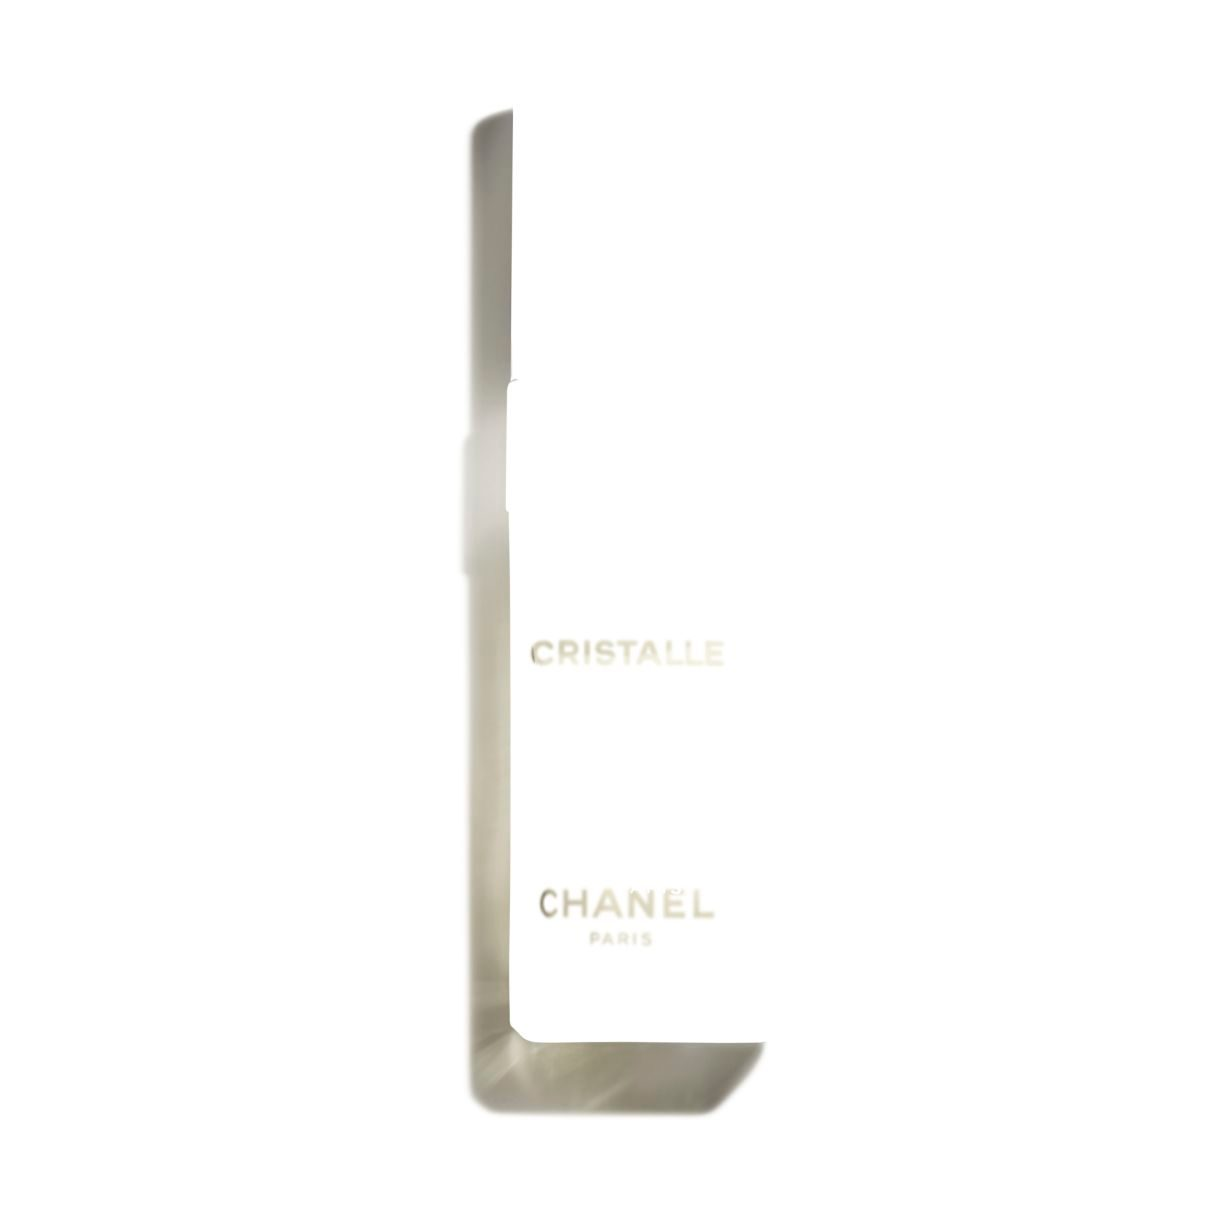 CRISTALLE EAU DE TOILETTE SPRAY